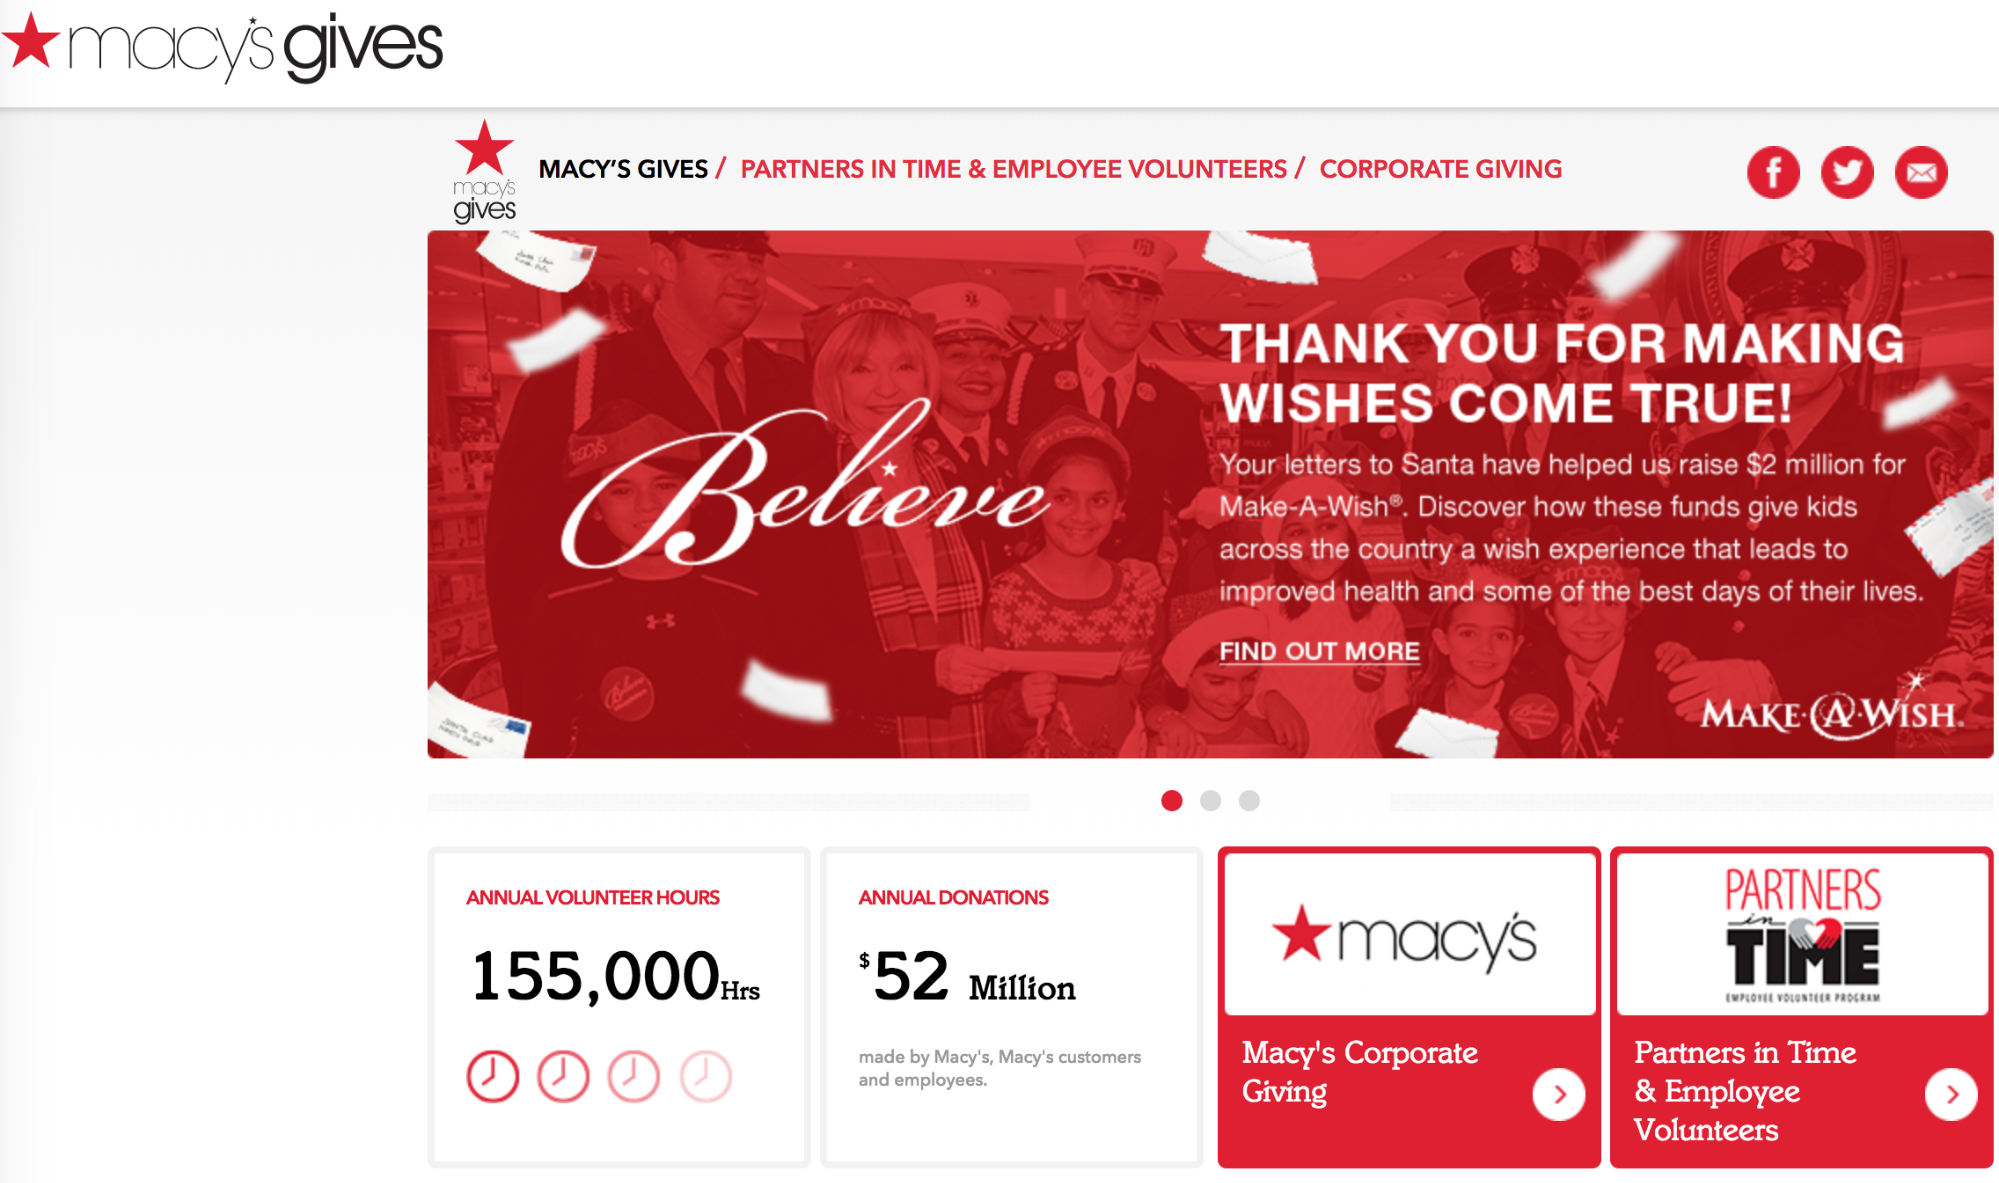 Screenshot showing a charity page on macy